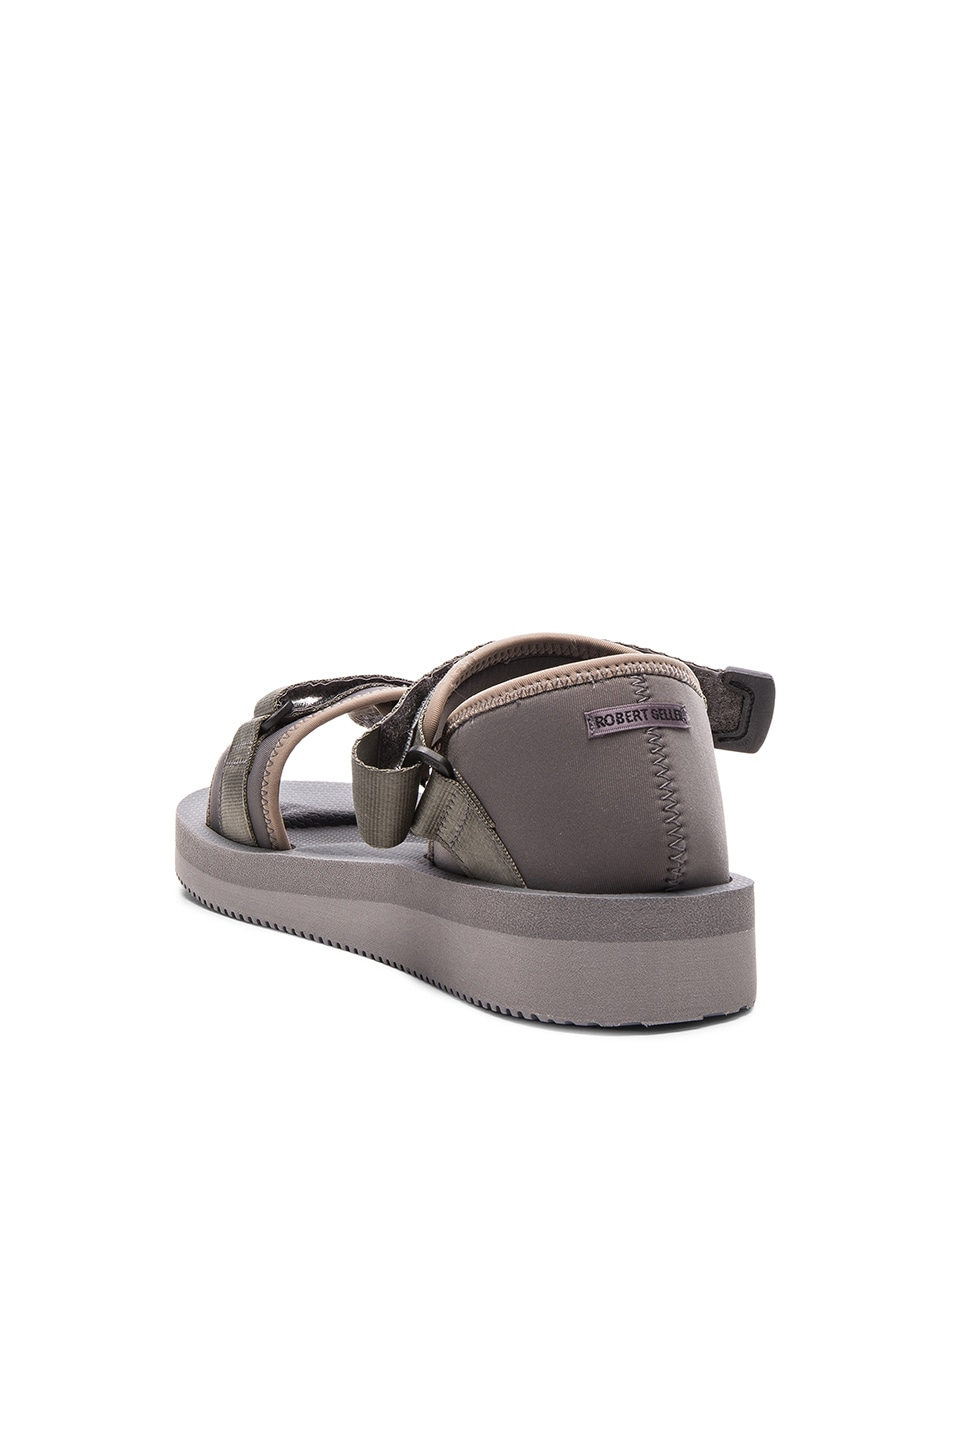 917c114aec3 Image 3 of Robert Geller Suicoke Sandals in Grey